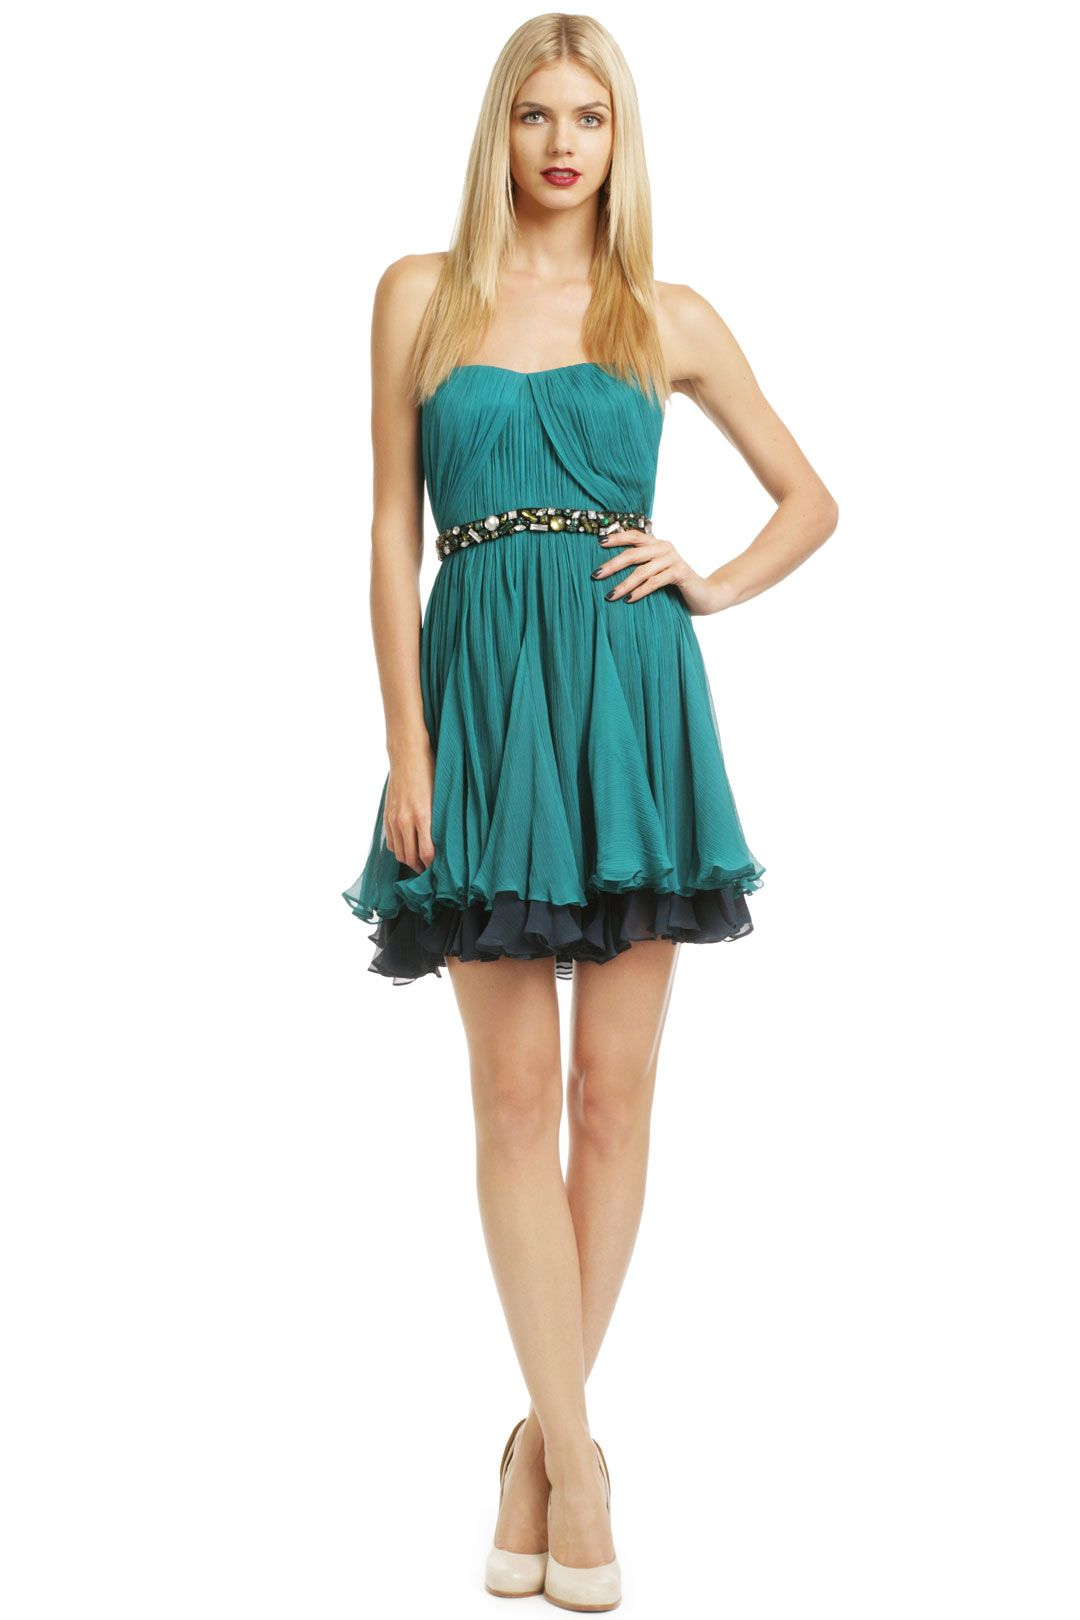 Dance With Me Dress | Dancing, Turquoise shorts and Short formal dresses